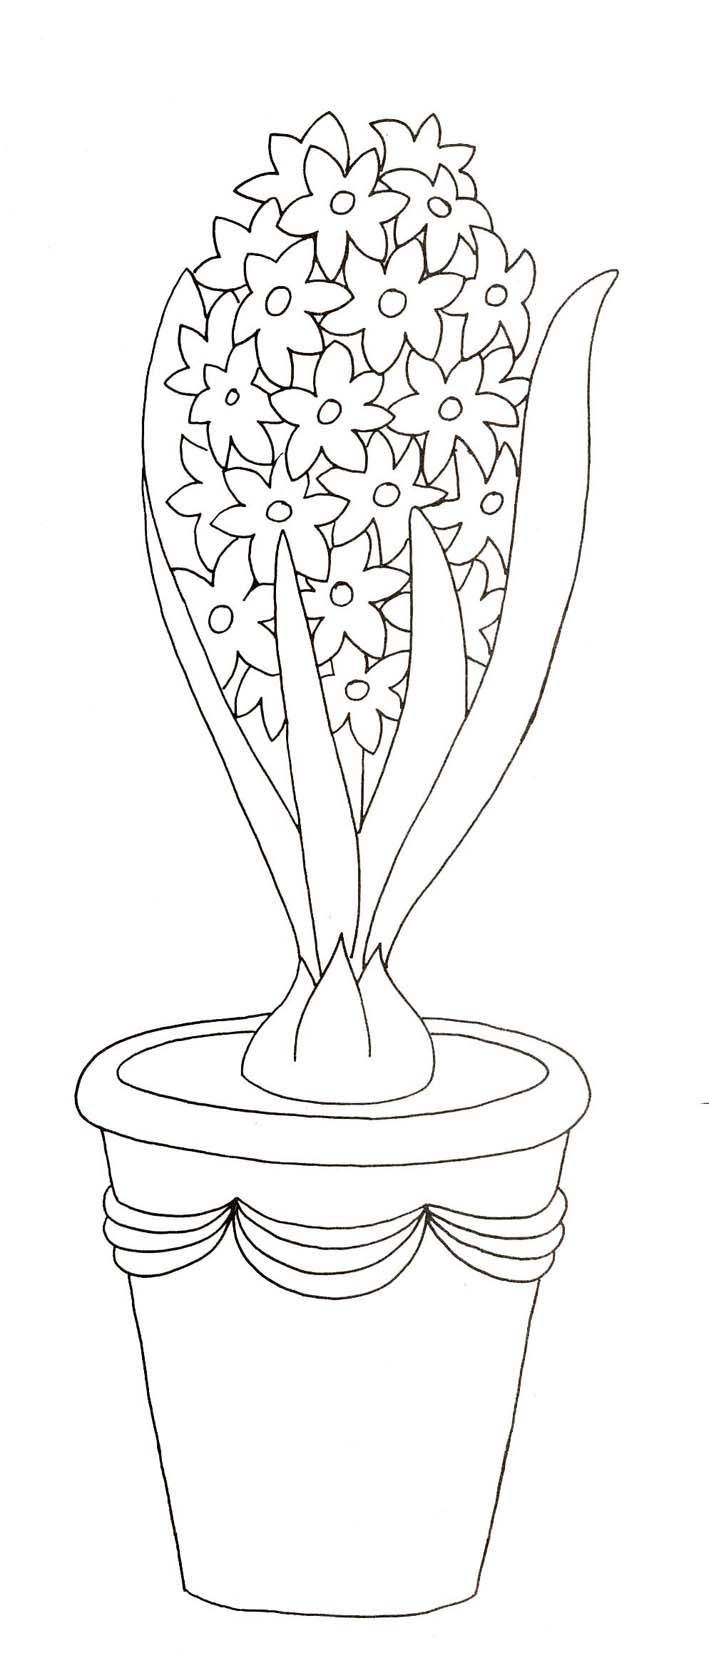 jácint | Spring coloring pages | Pinterest | Colorear, Molde y Cuadro